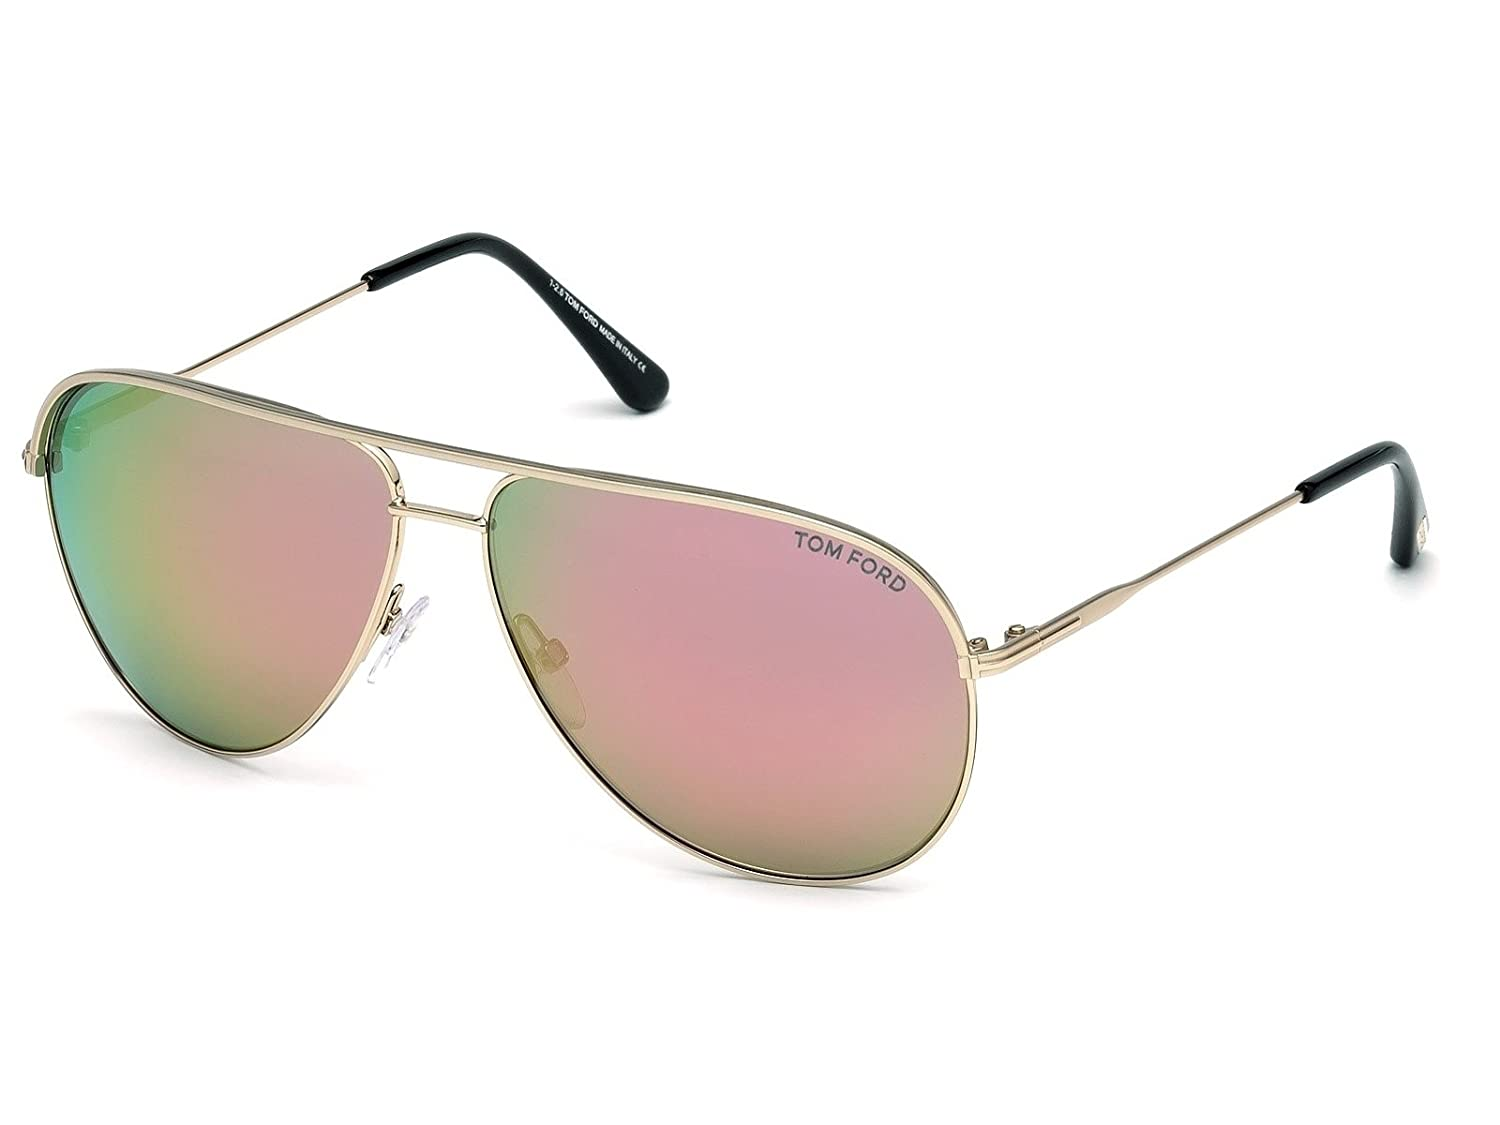 5d823c0965b1 Sunglasses Tom Ford ERIN TF 466 FT 29Z matte rose gold   gradient at Amazon  Women s Clothing store